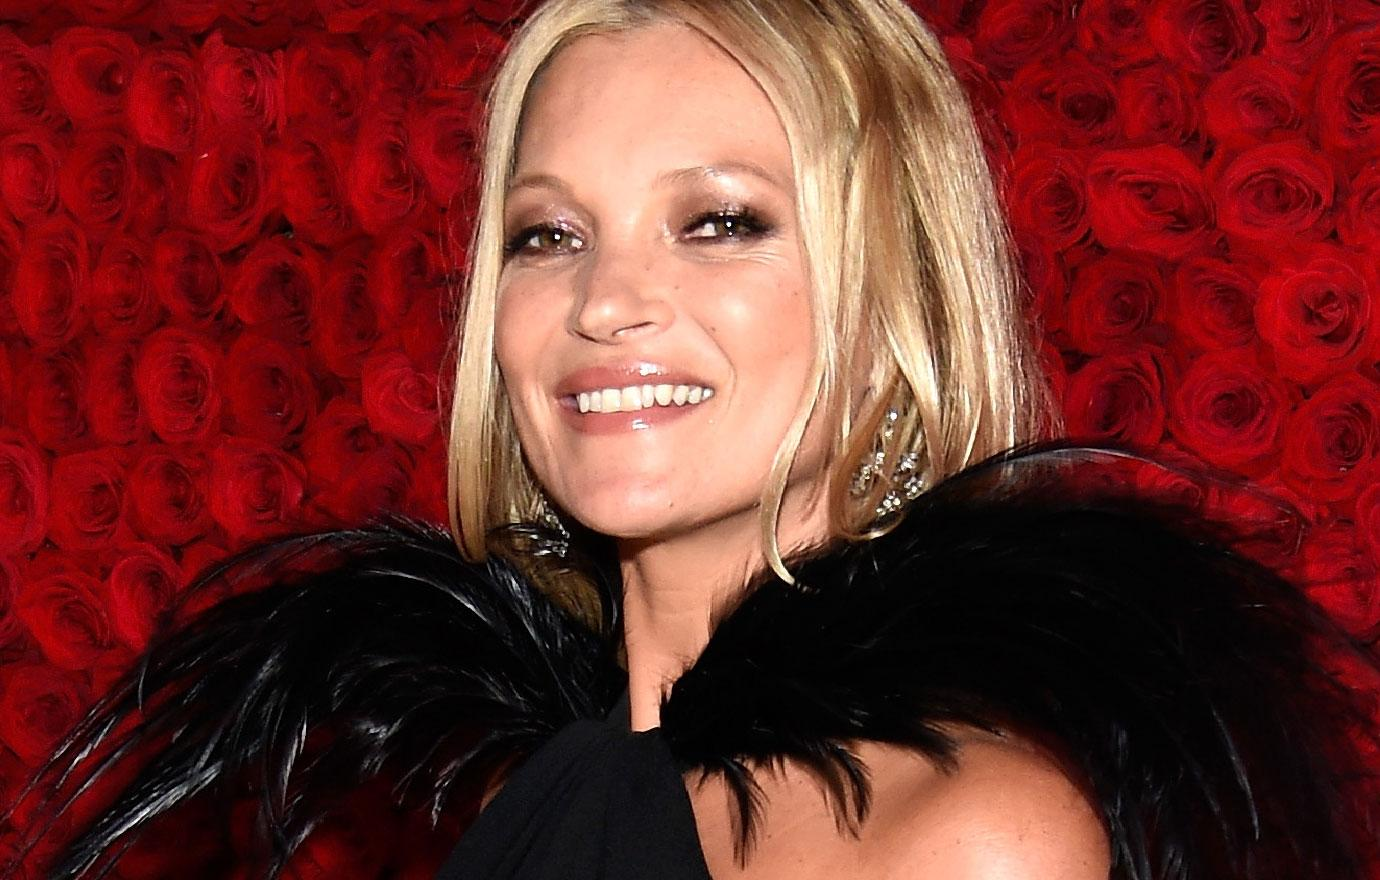 Kate Moss Sober For One Year After Friend's Death